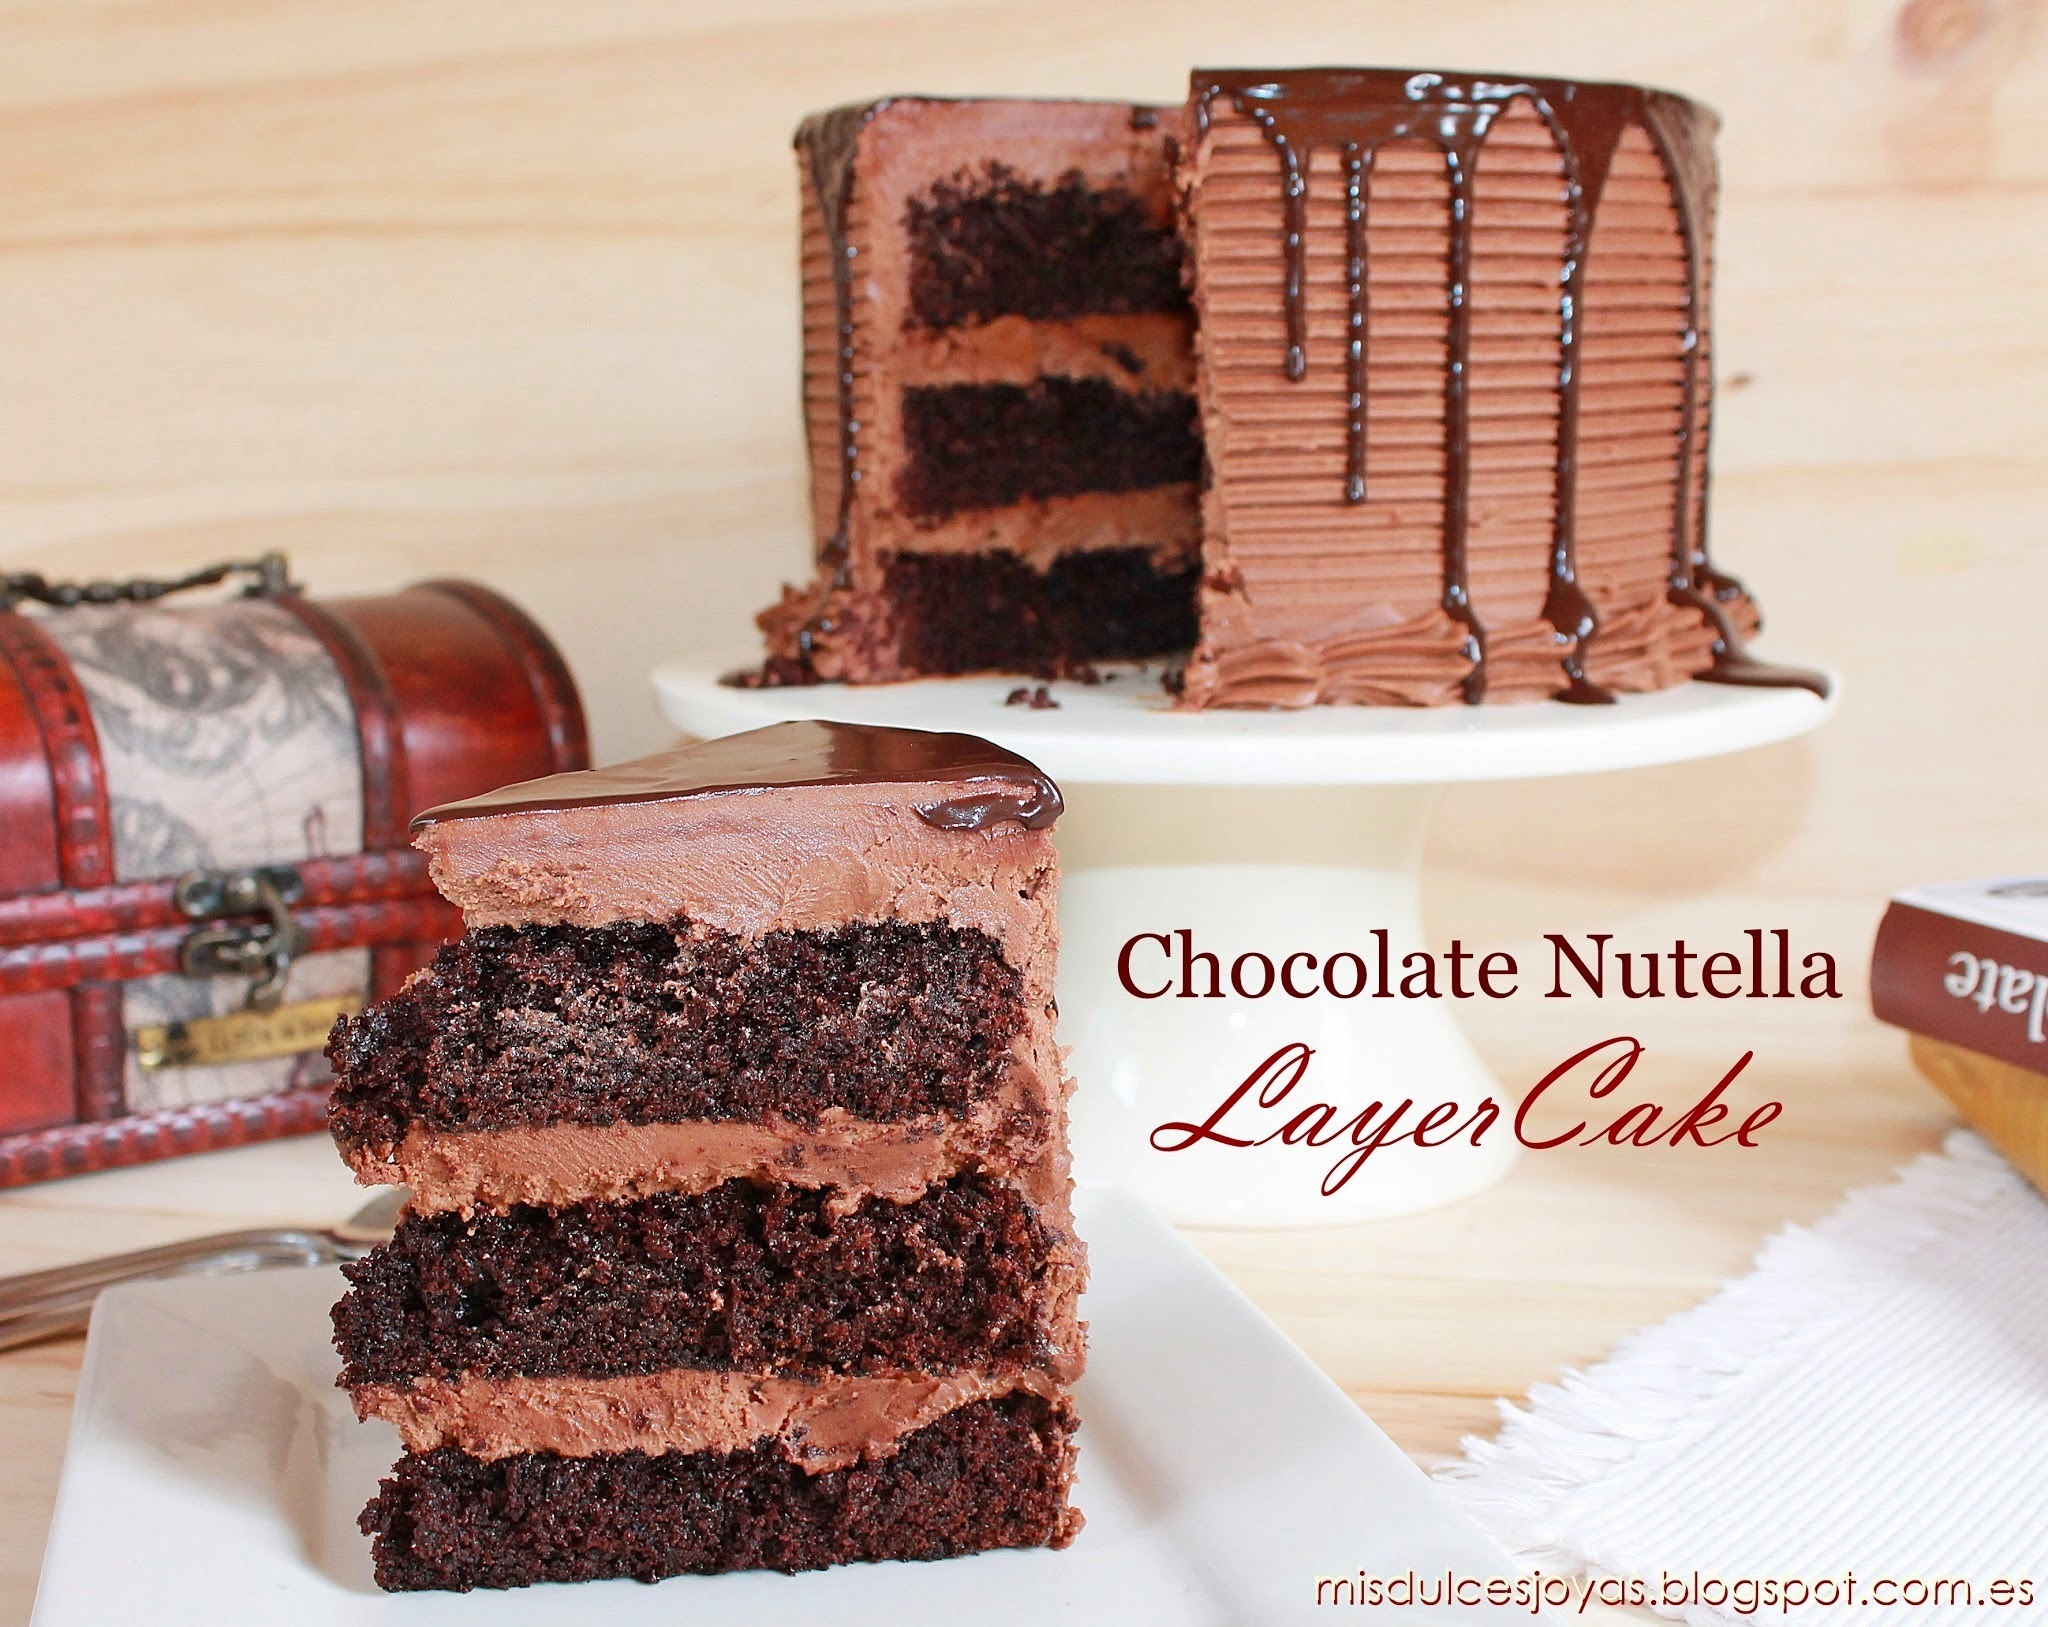 Chocolate Nutella Layer Cake